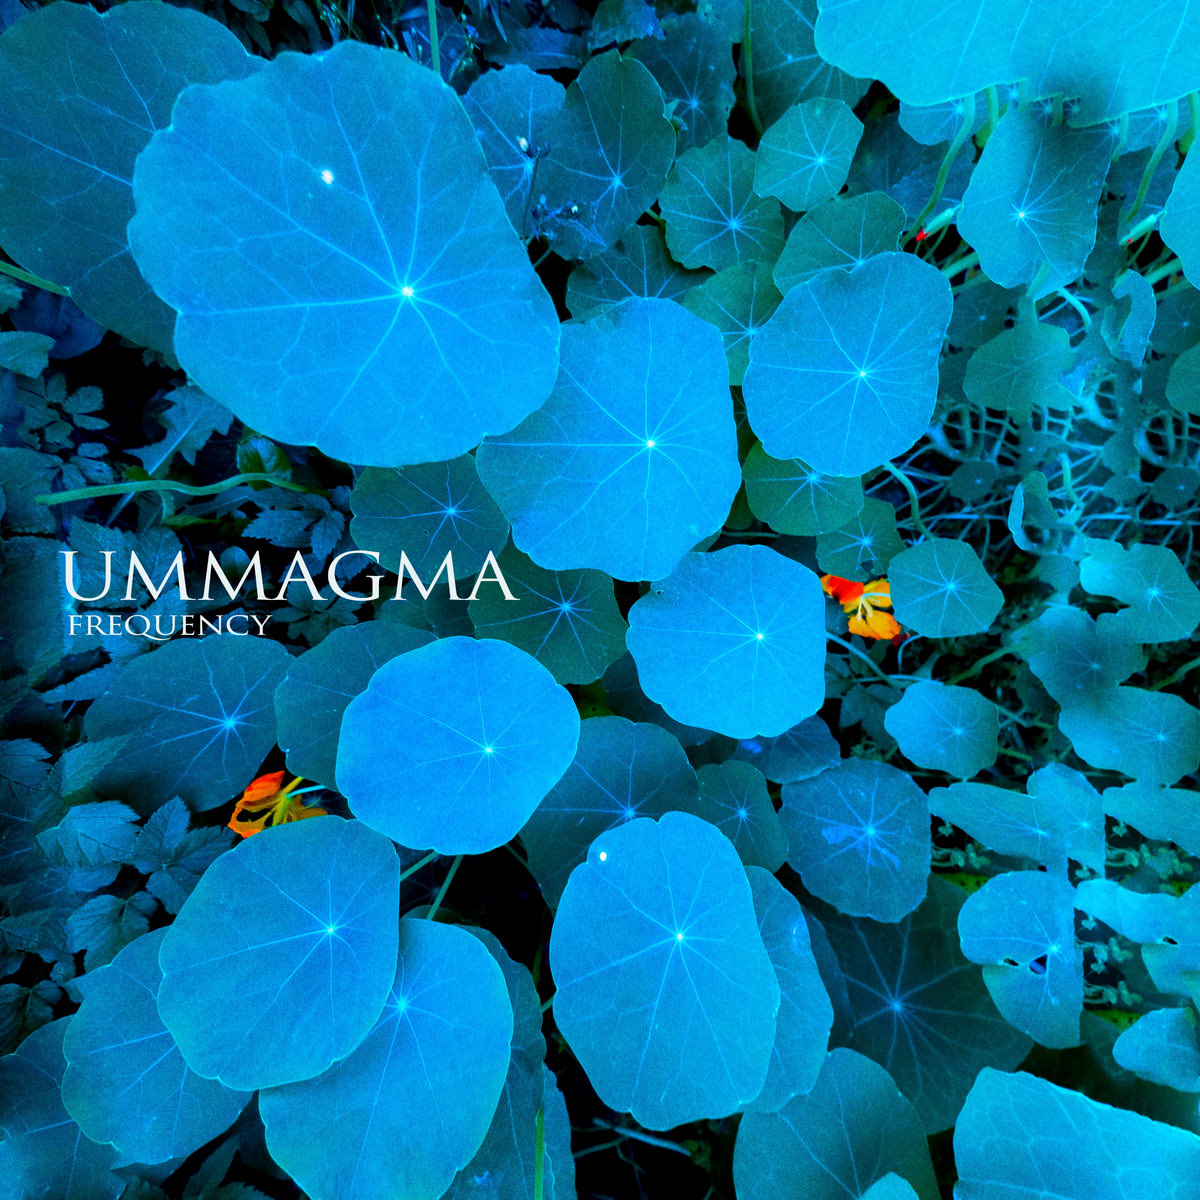 Ummagma artwork